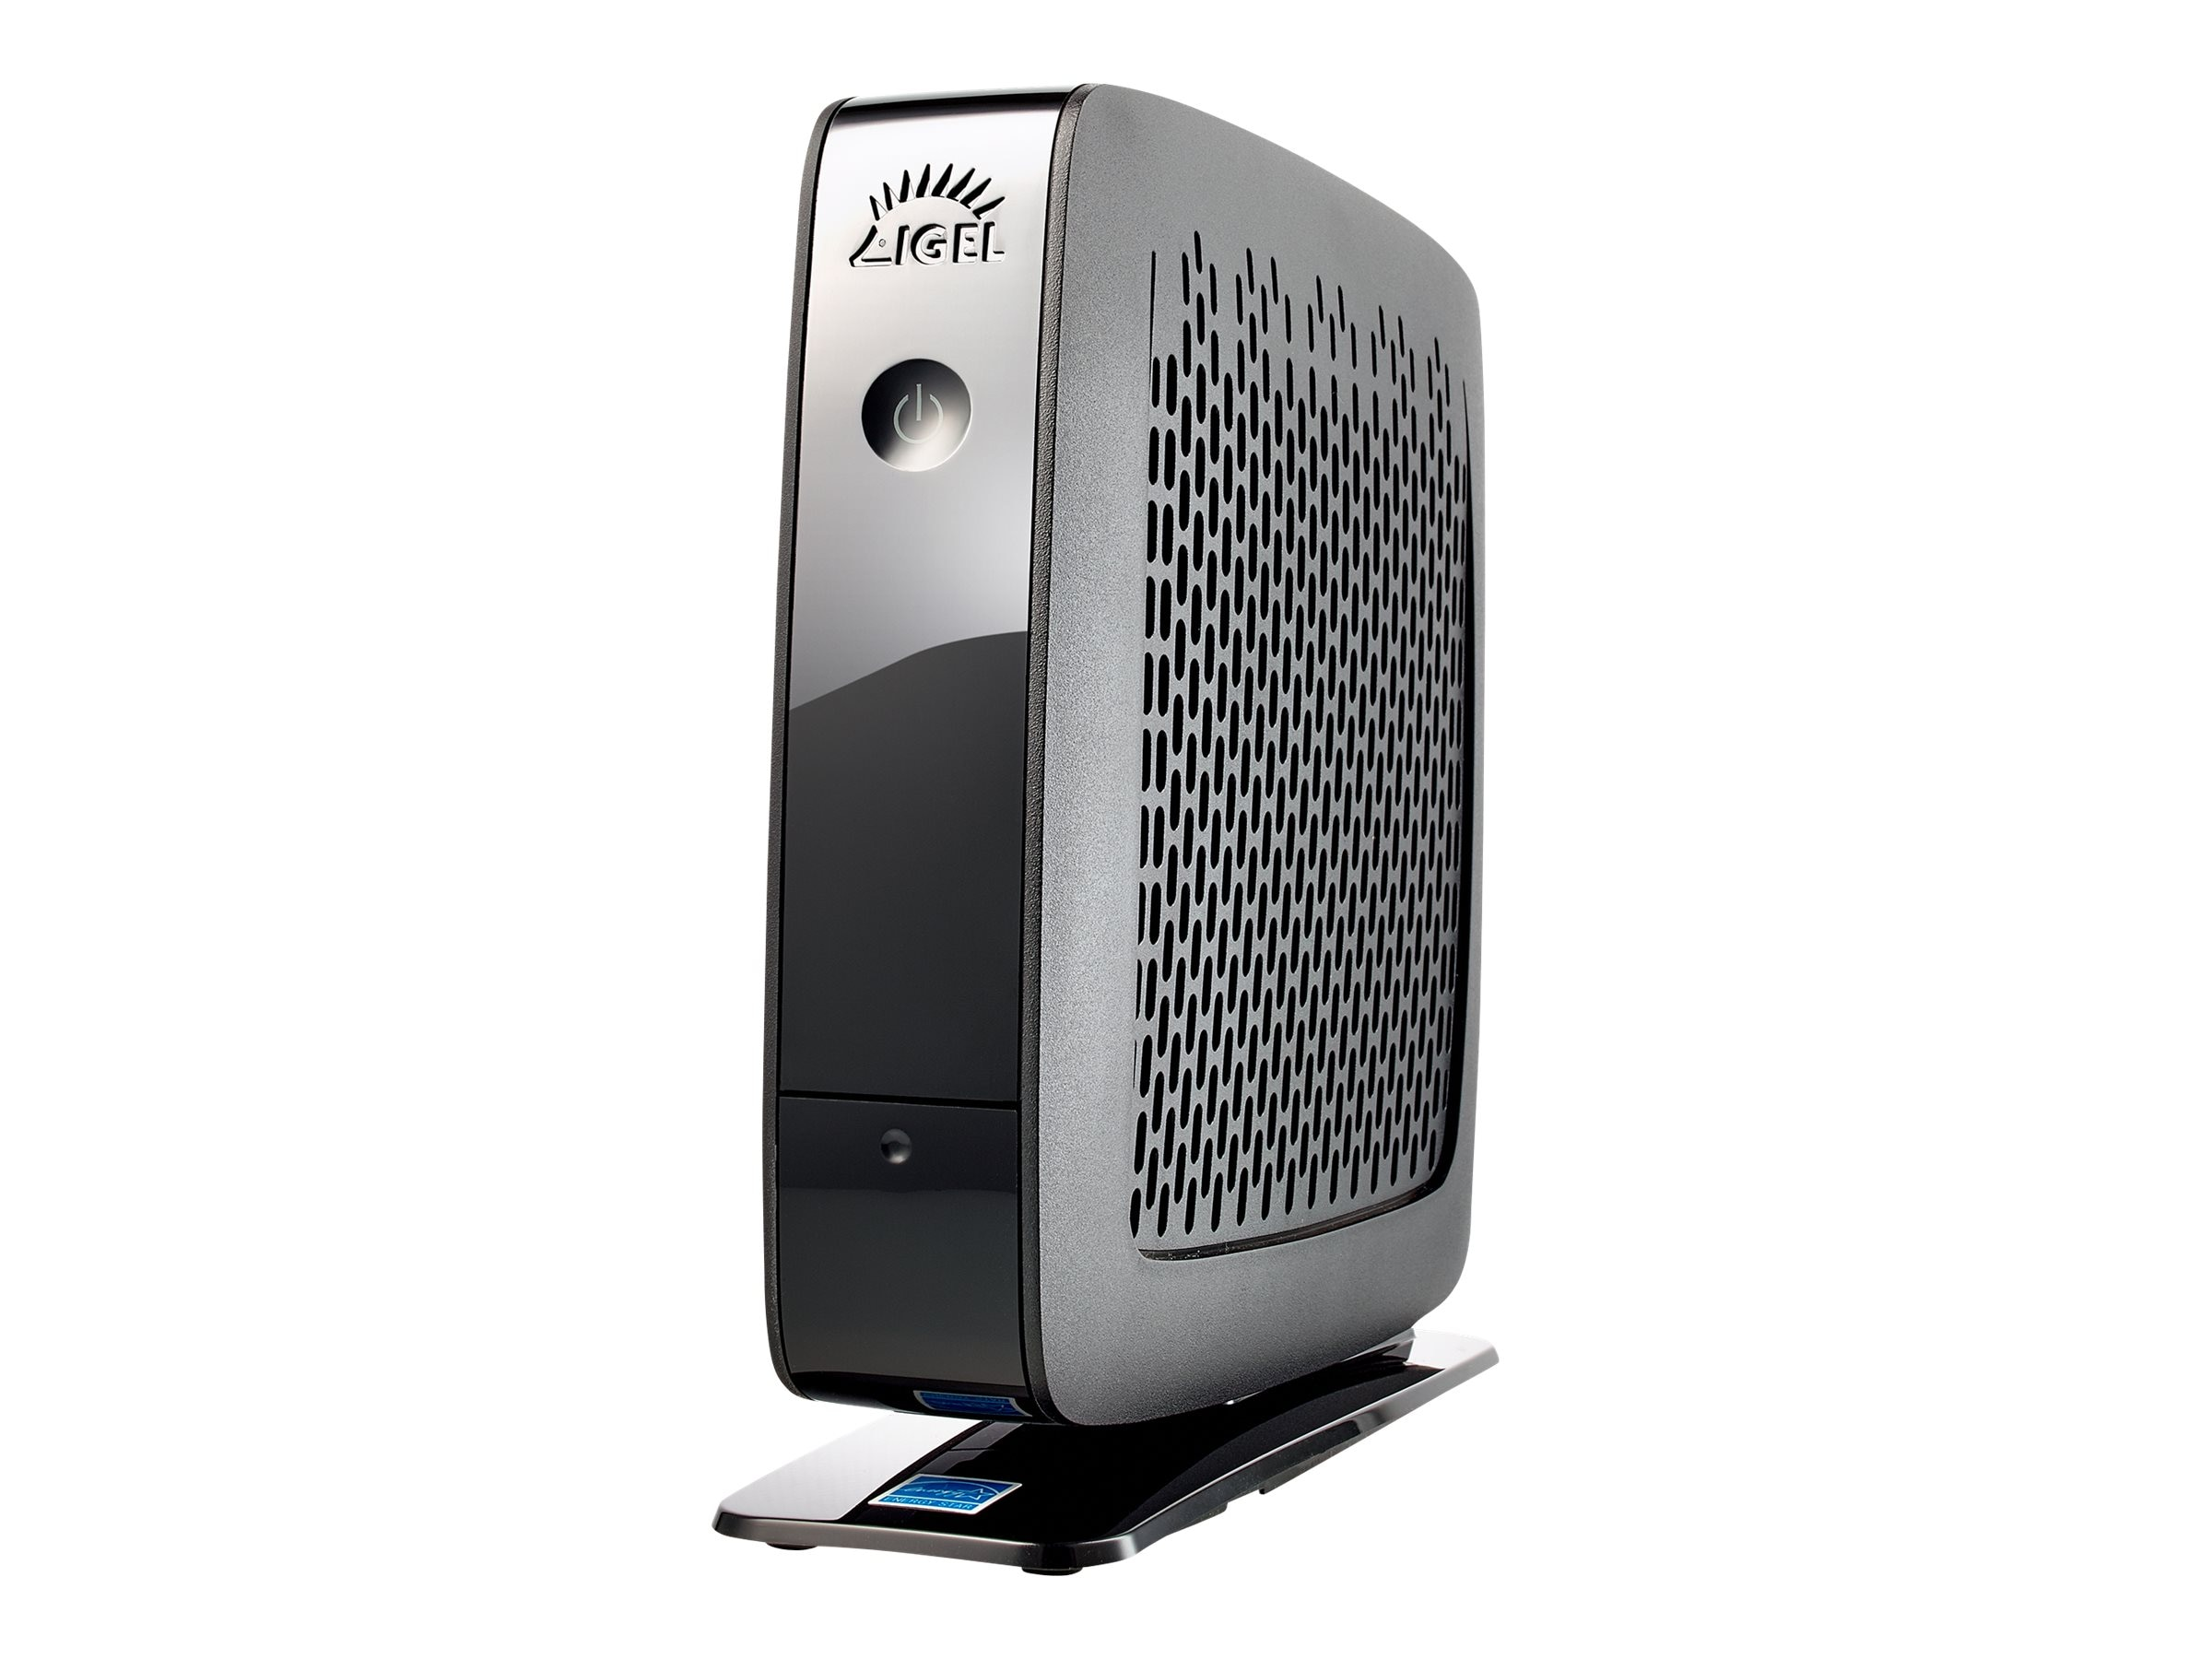 IGEL IZ2 UD2 Intel 1.46GHz 2GB RAM 2GB Flash Linux, 62-IZ2-HDX40-33BL, 26272004, Thin Client Hardware